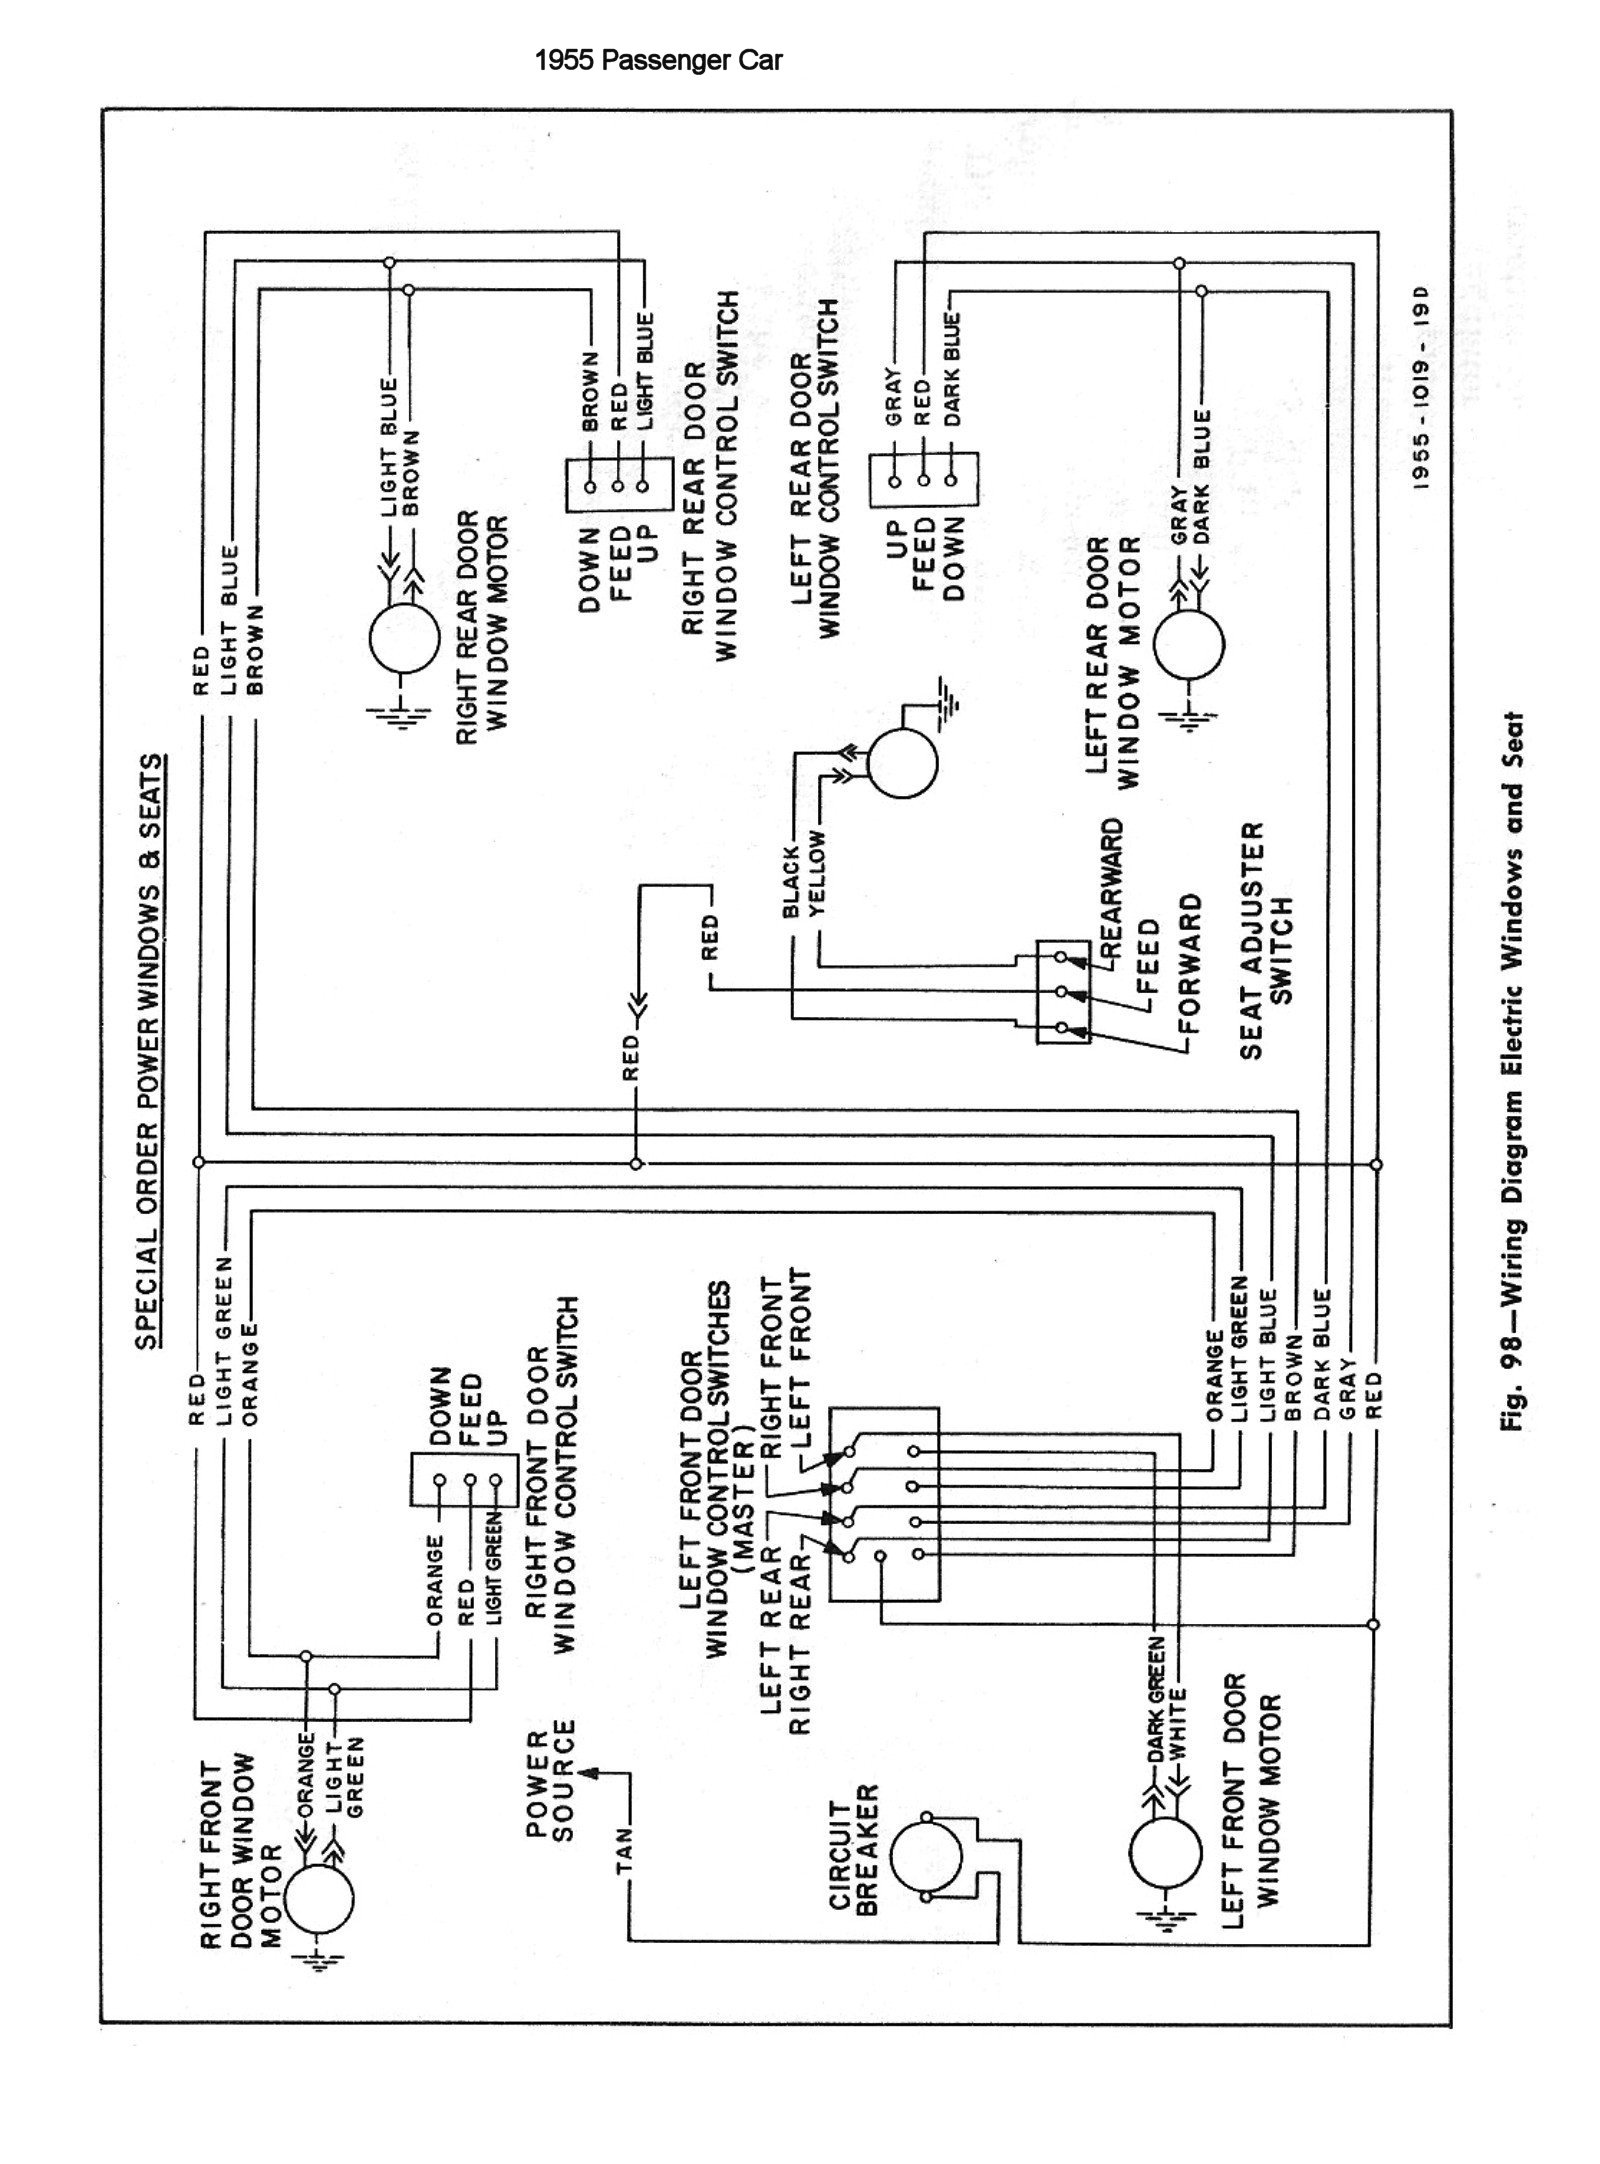 55csm0146 chevy wiring diagrams 85 chevy truck wiring diagram at webbmarketing.co